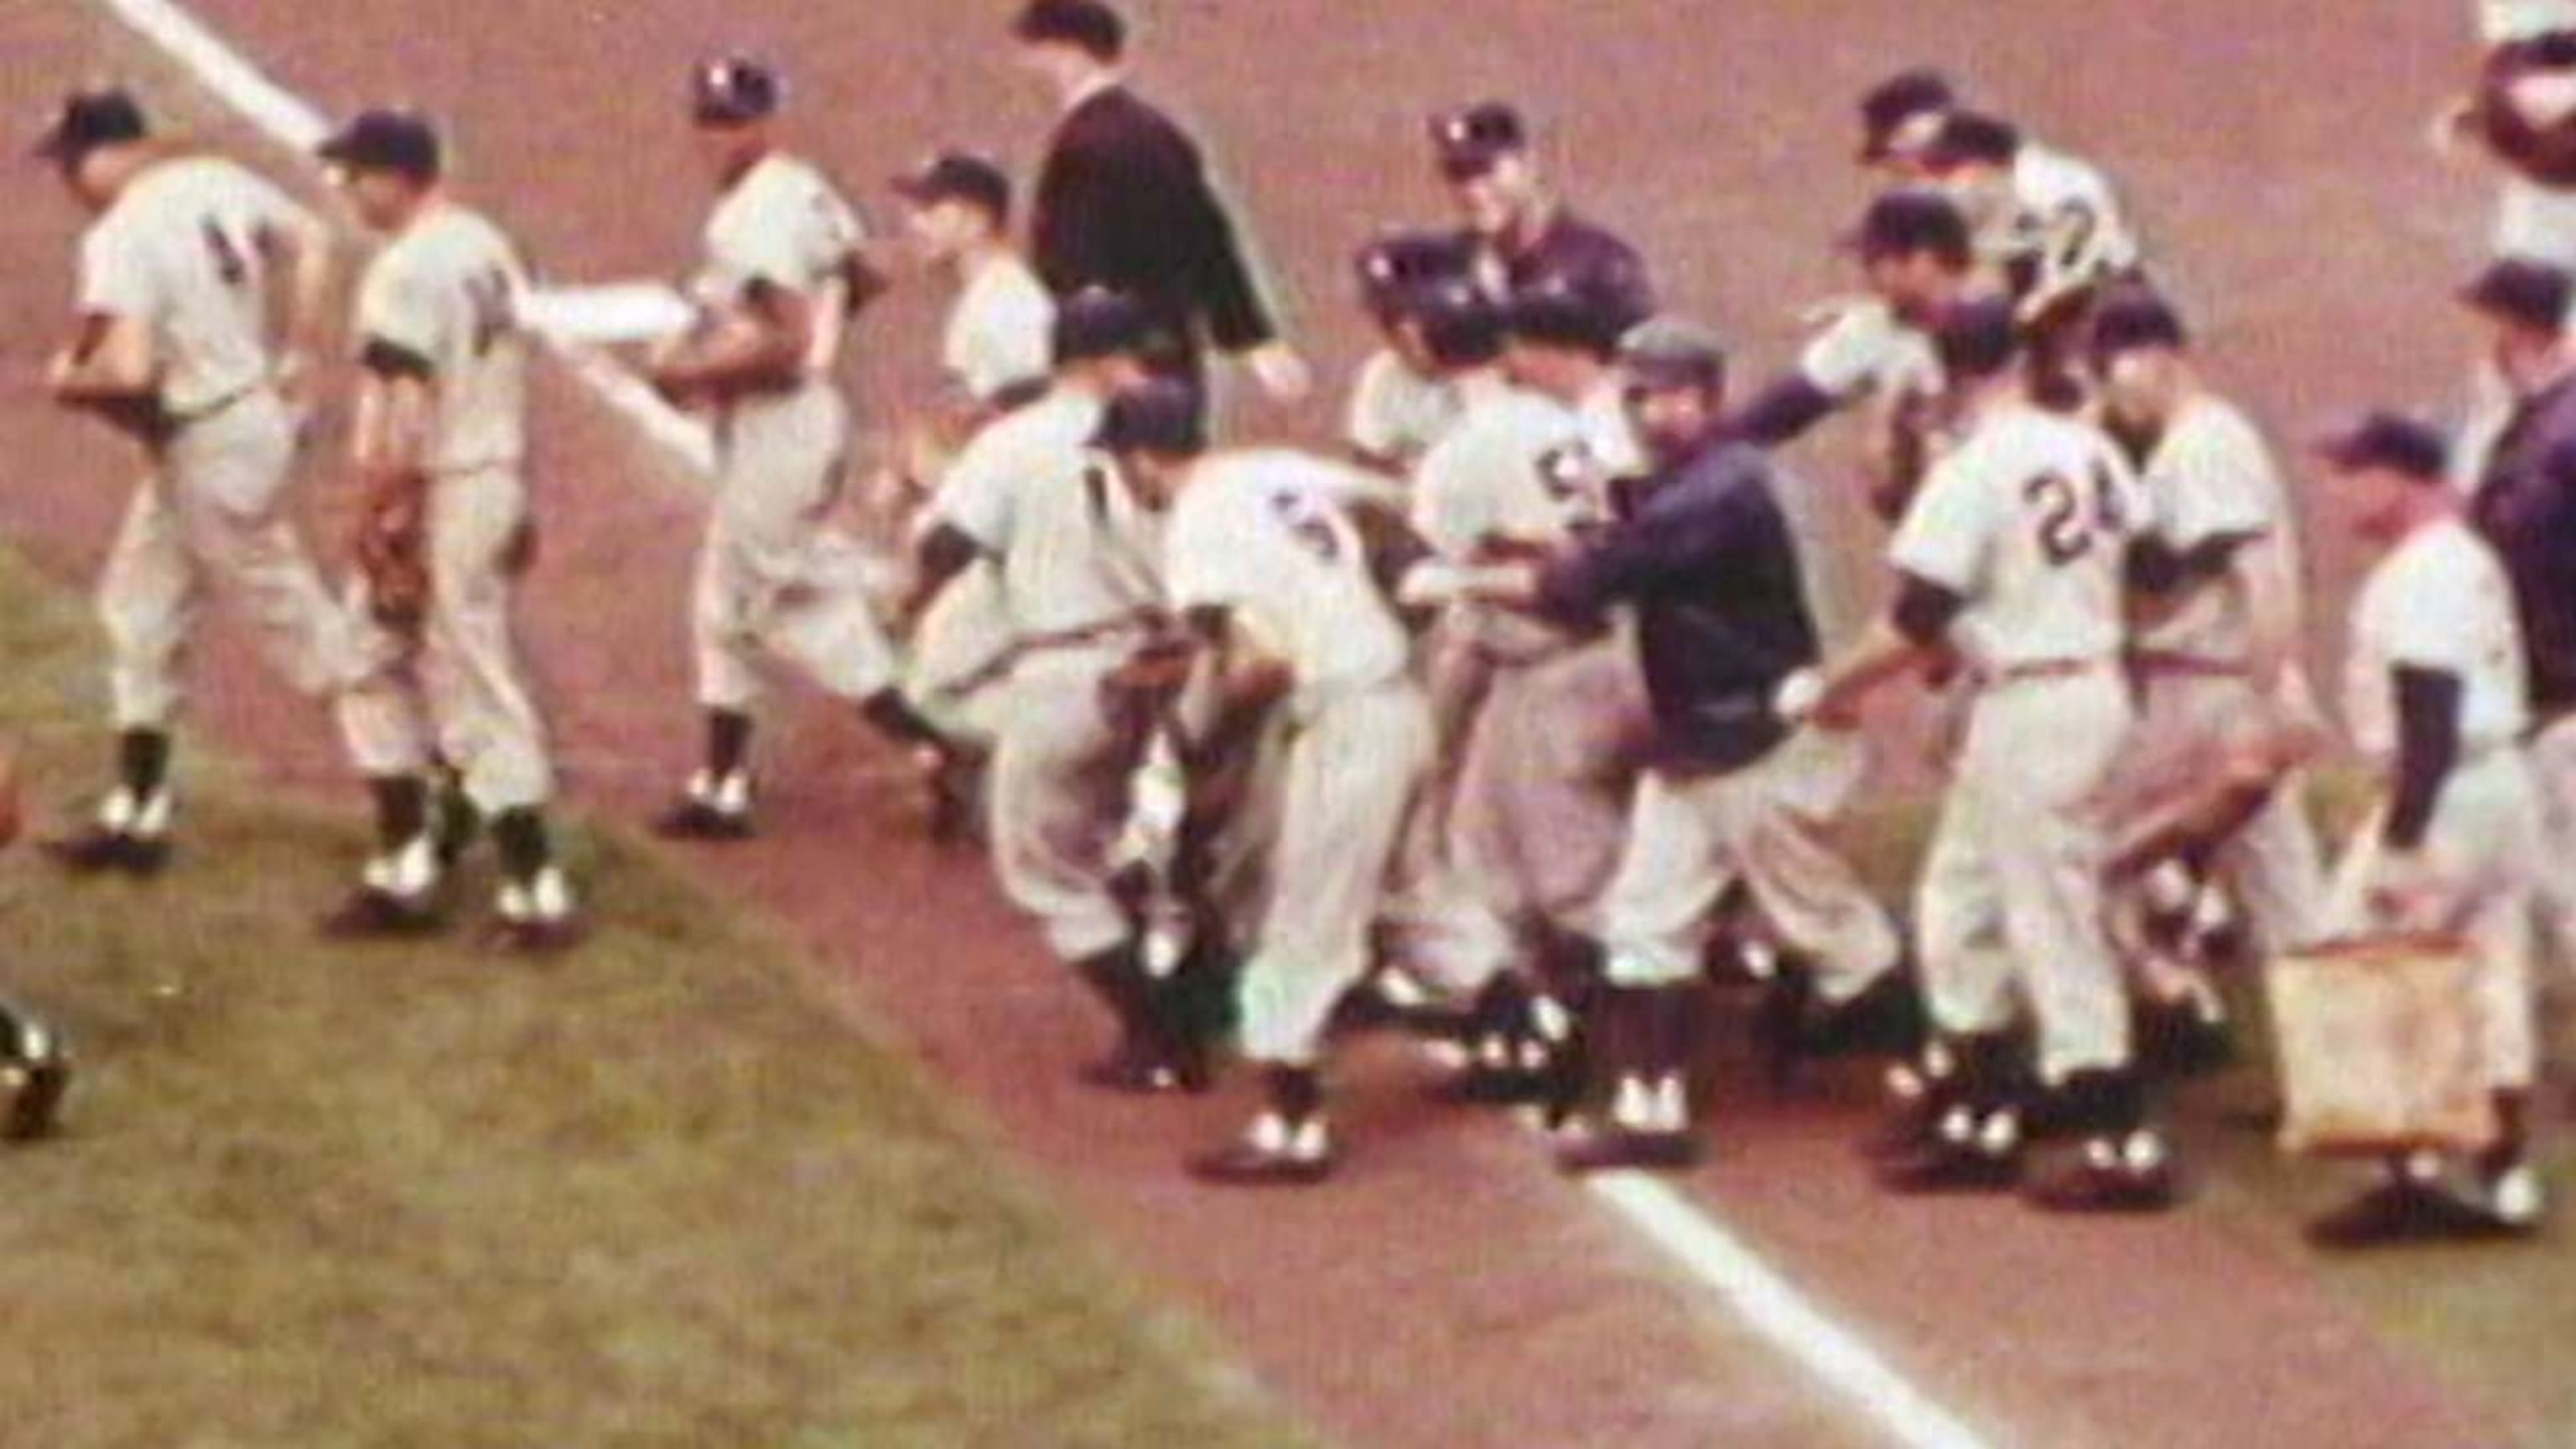 Dodgers win 1959 World Series